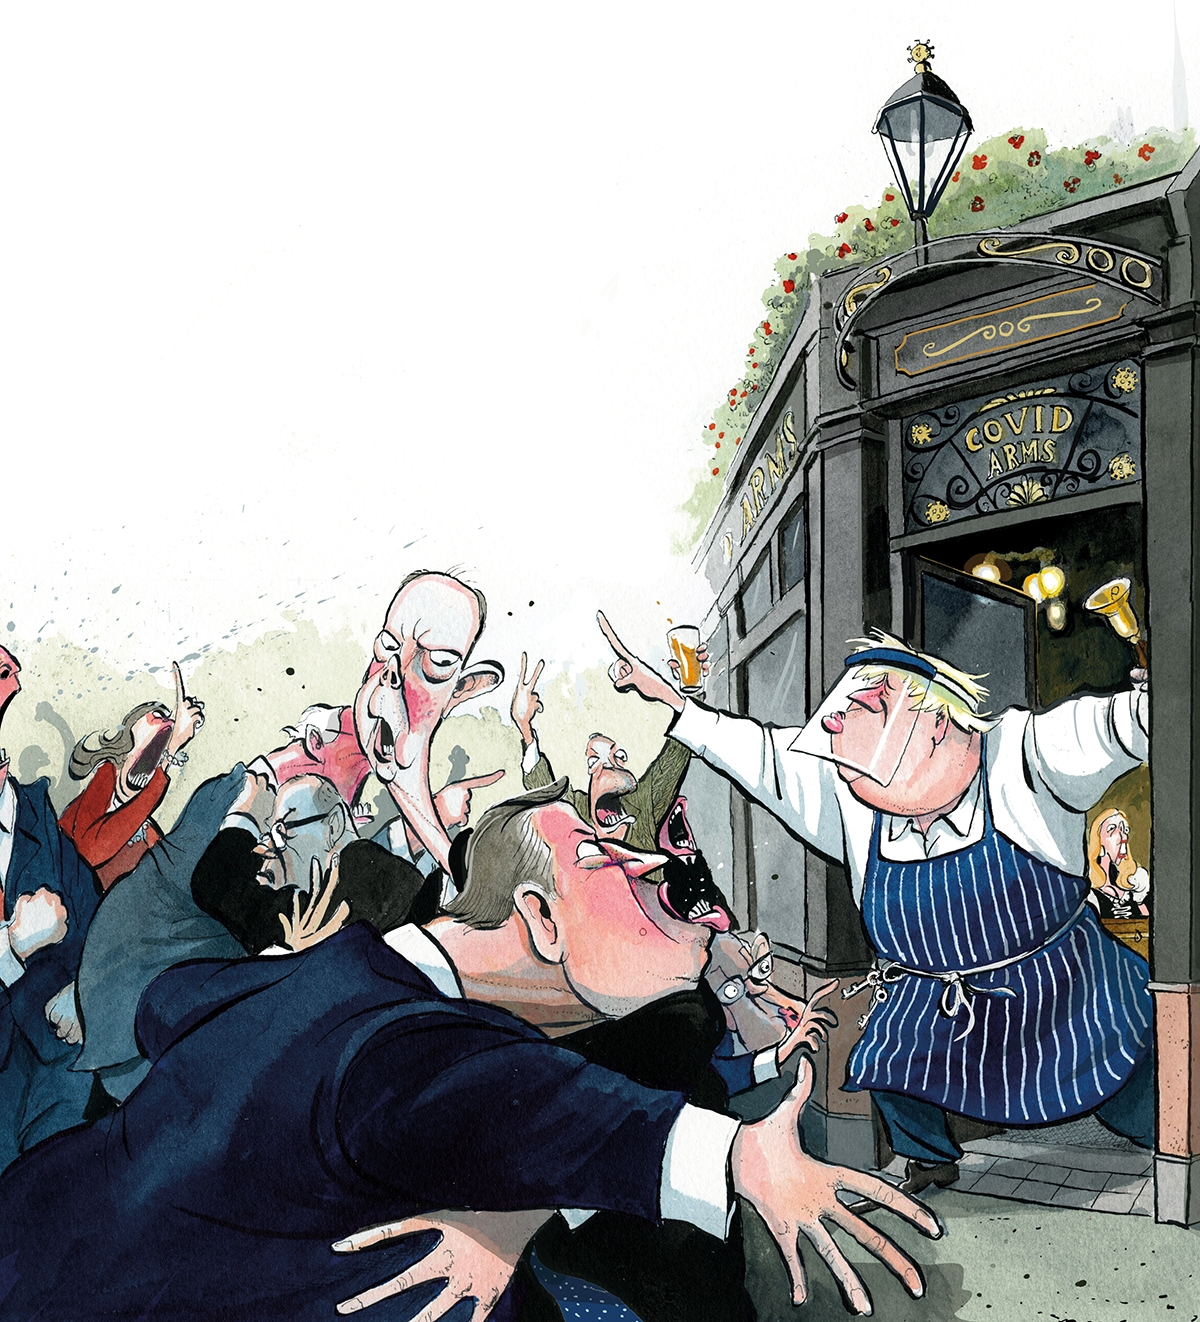 Closing time: the coming Tory brawl over Covid rules